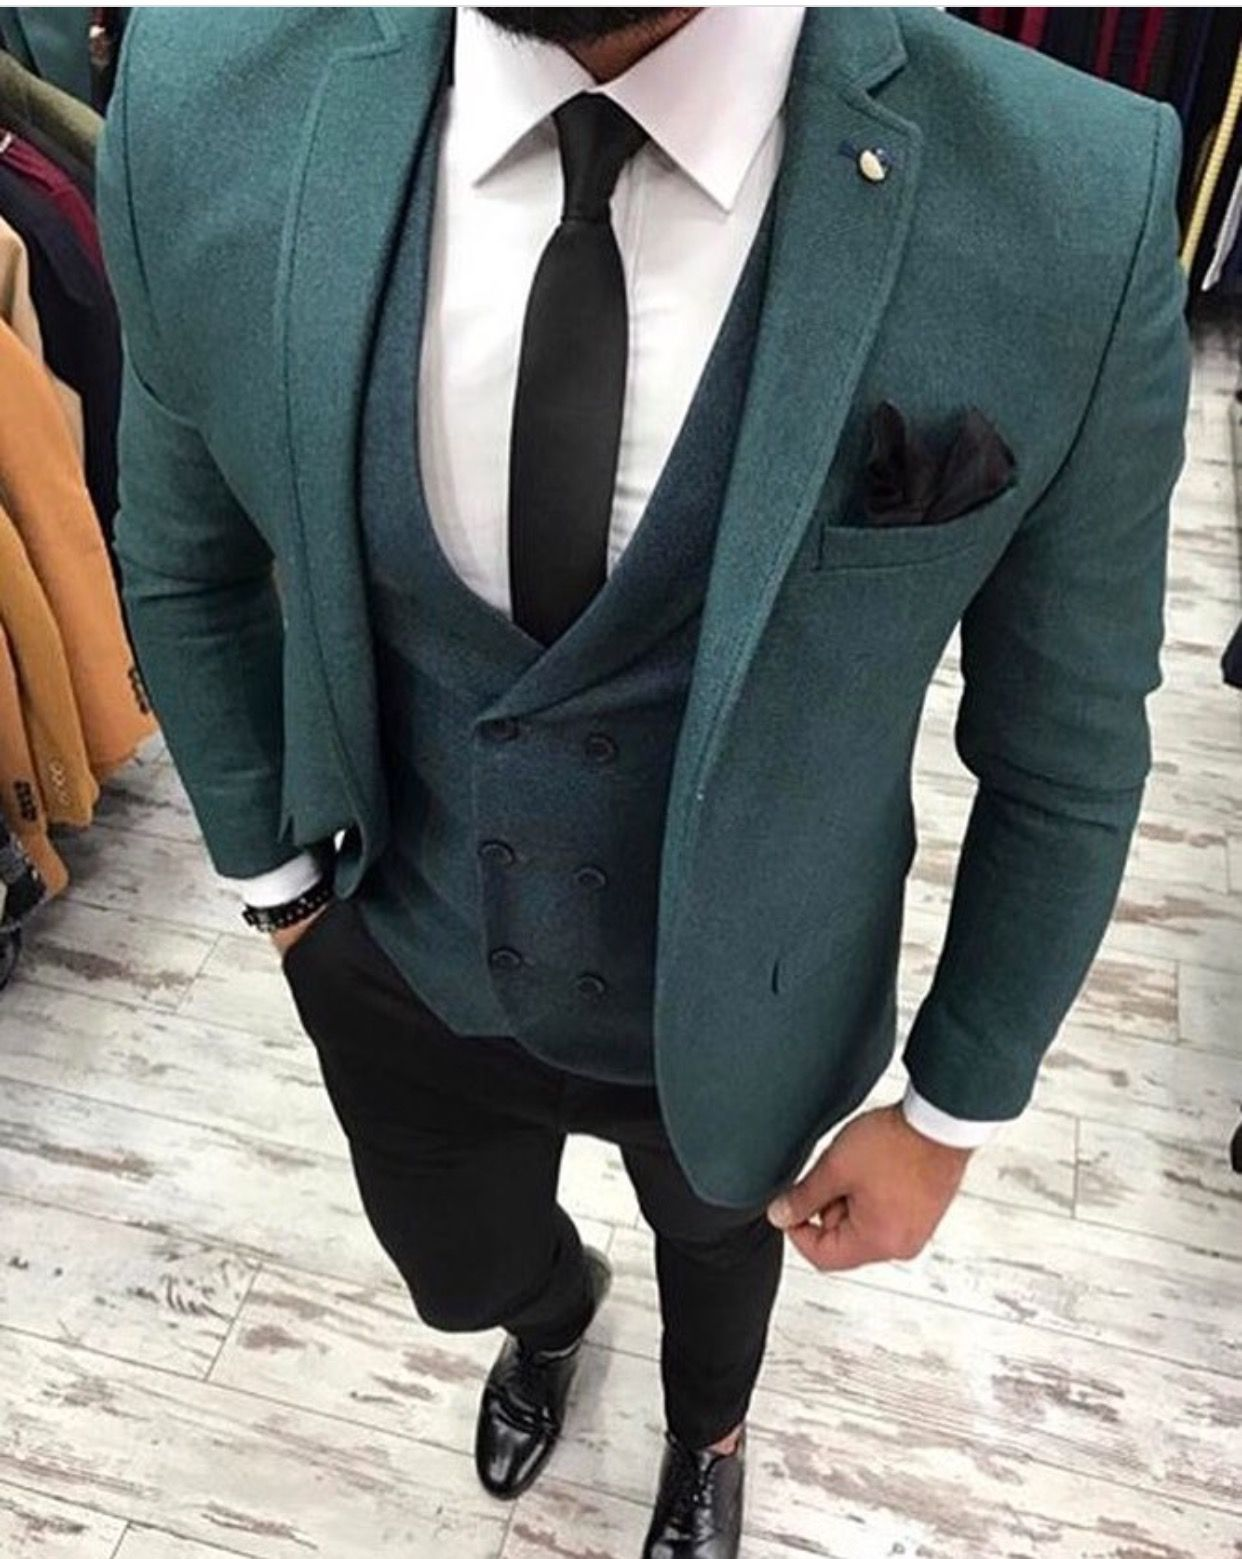 7dce02f35 Men s green three piece suit with black pants